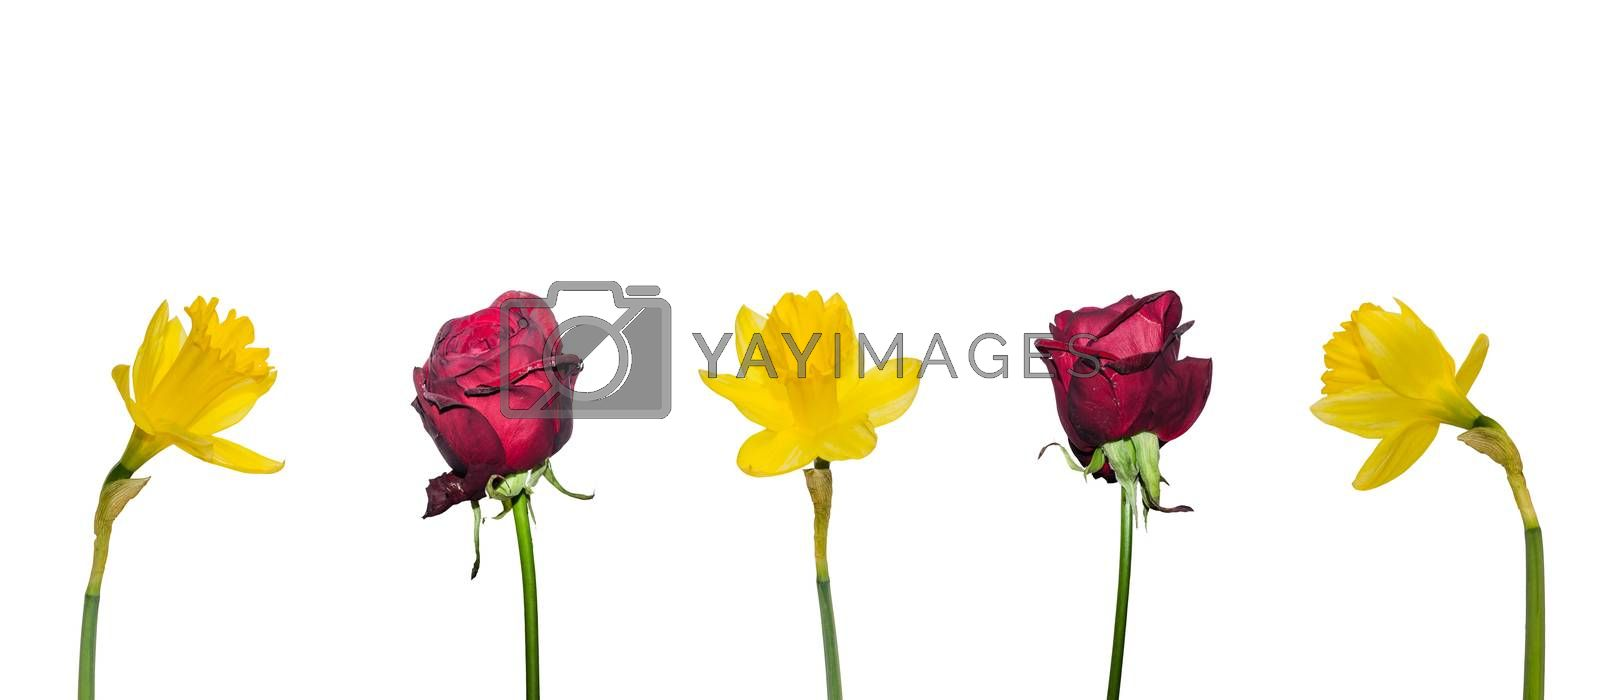 roses daffodils flower white panorama view